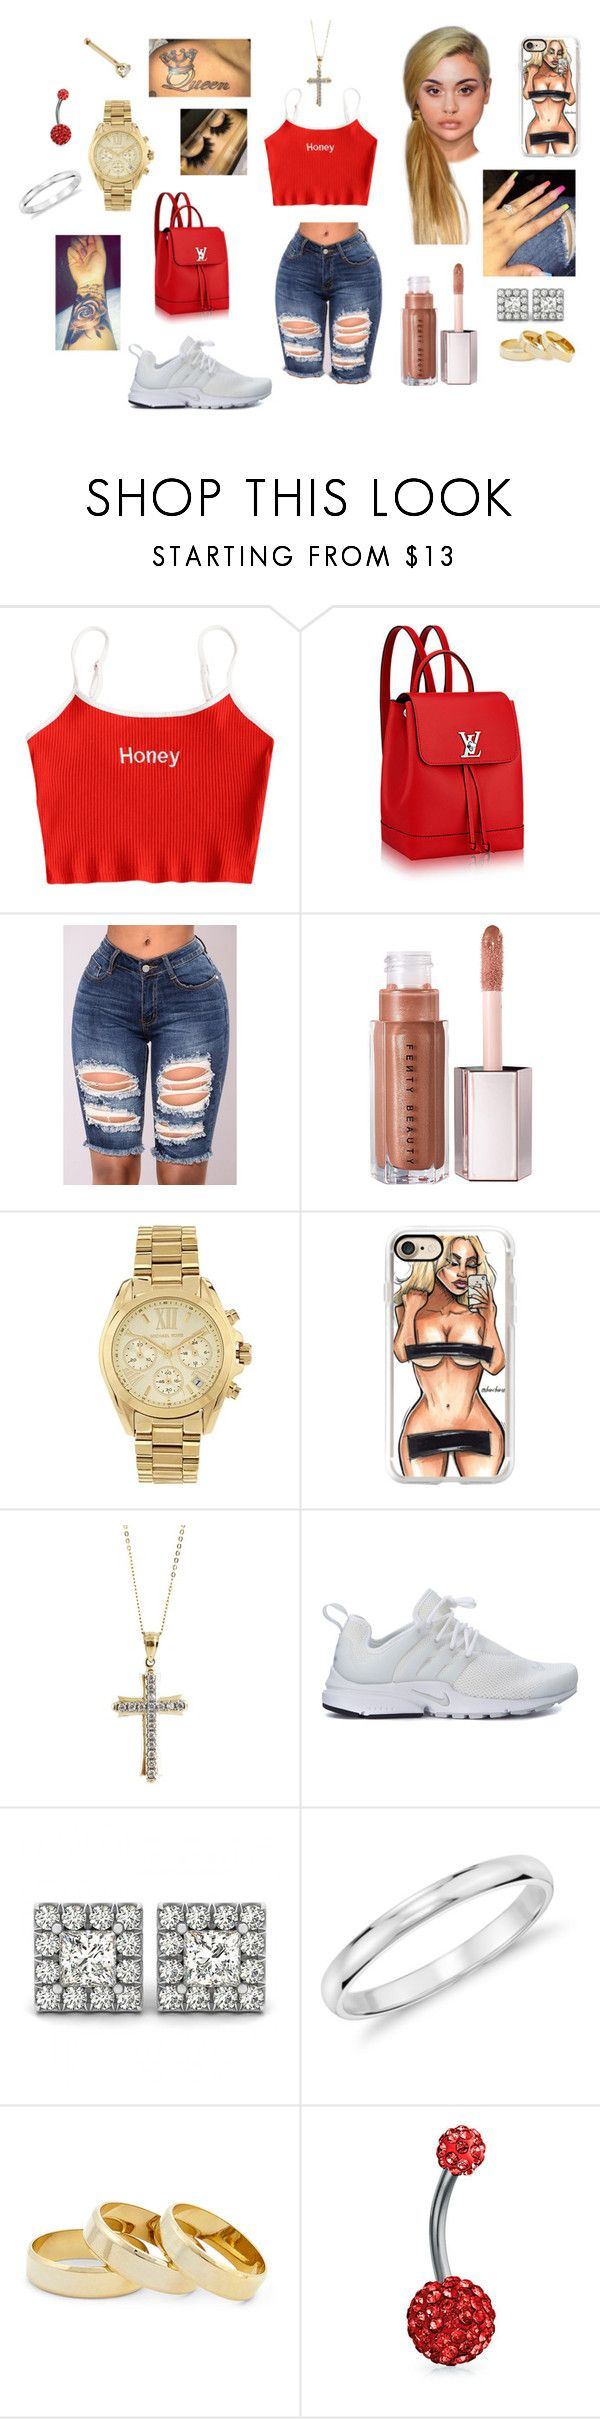 """You Make Me Feel-Cobra Starship"" by gumdrop1798 ❤ liked on Polyvore featuring Louis Vuitton, Michael Kors, Casetify, Cross, NIKE, Blue Nile, Sole Society and Bling Jewelry"